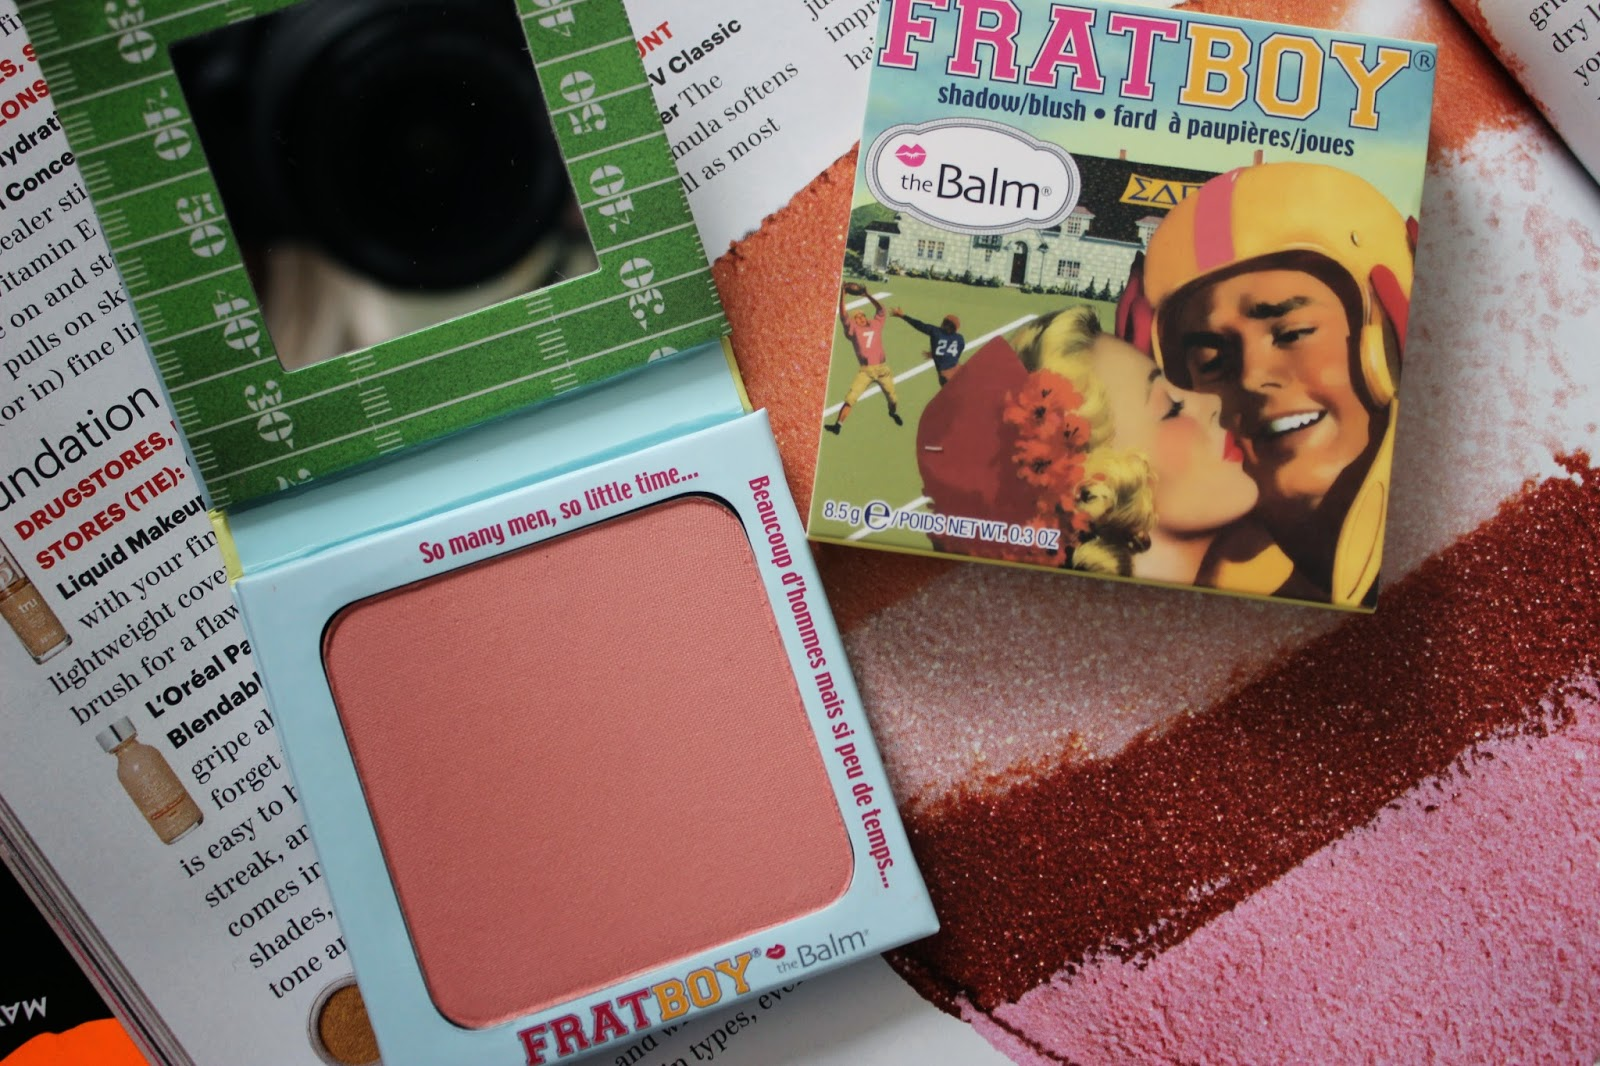 The Balm Frat Boy Blush L'amour Josie Review